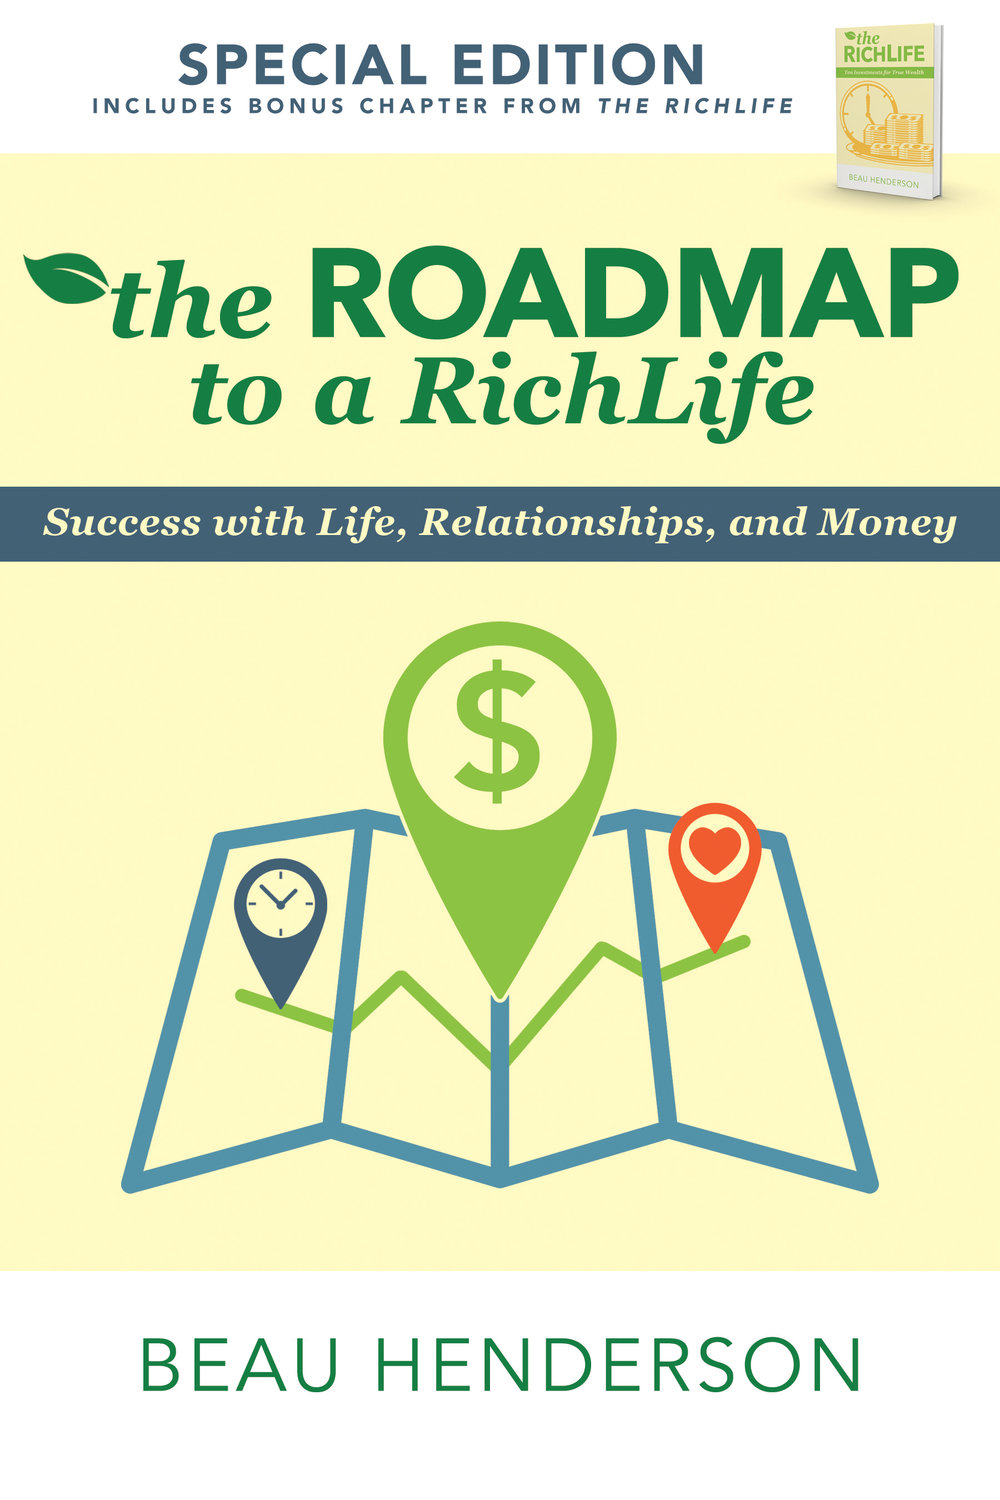 The Roadmap to a RichLife - By beau henderson